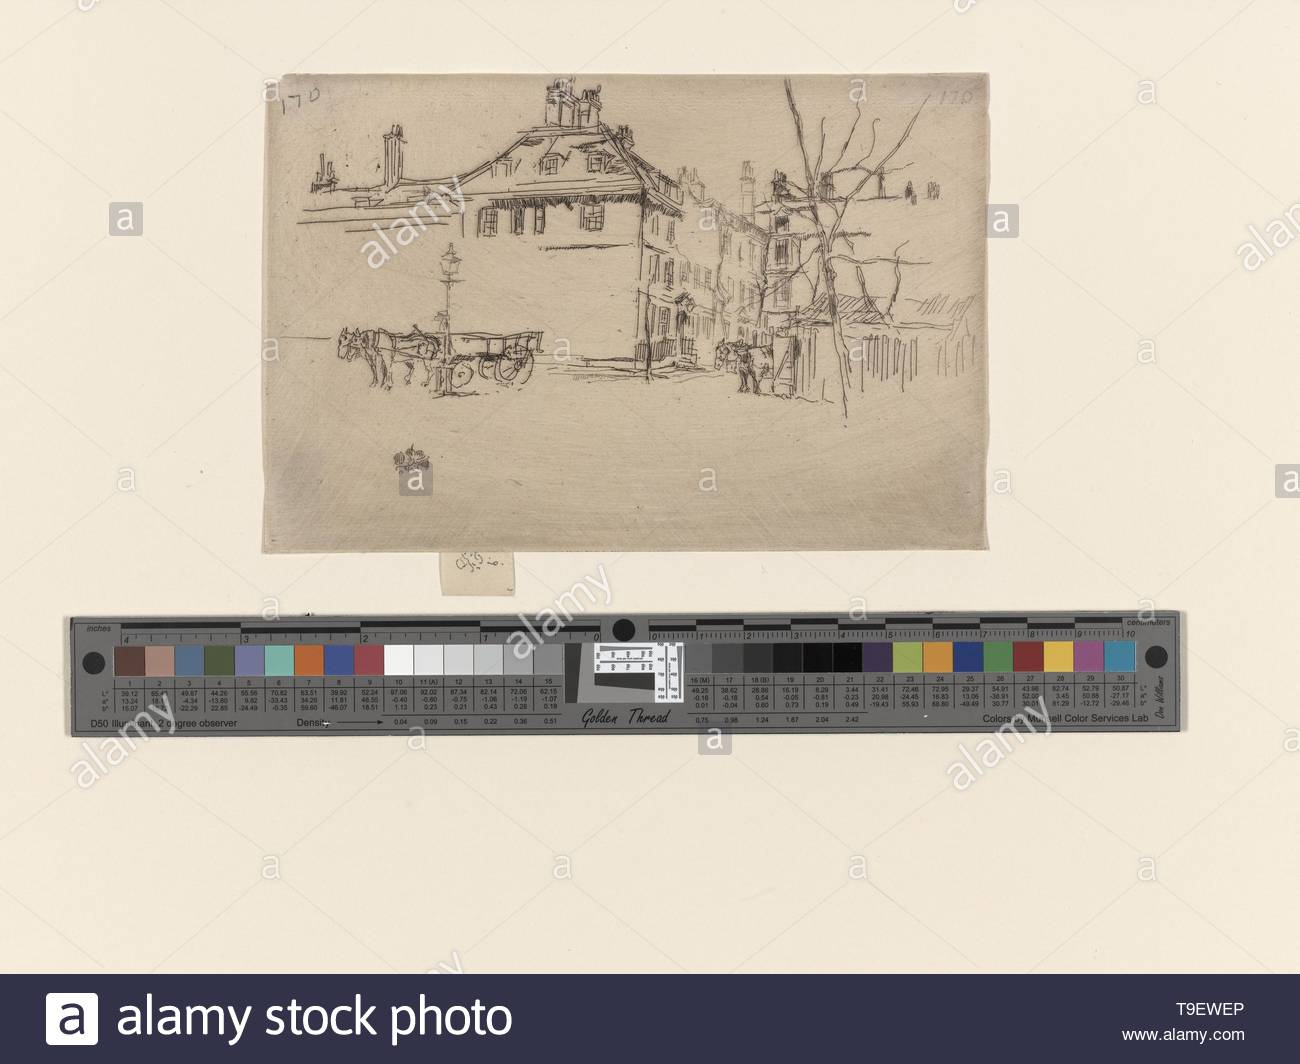 Whistler,JamesMcNeill(1834-1903)-Temple - Stock Image